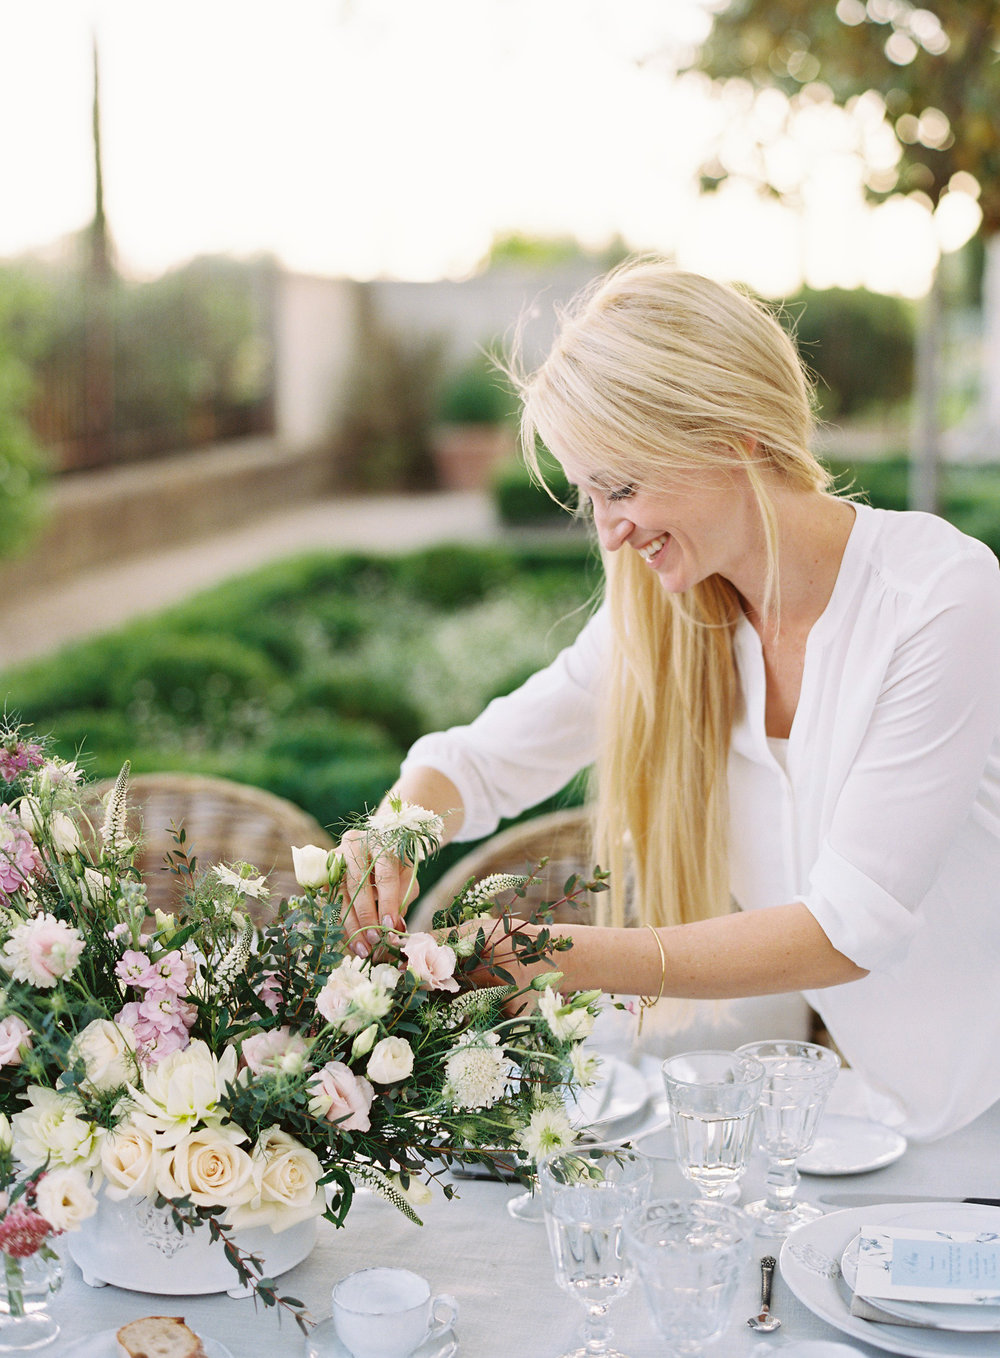 Kimberly Sisti perfecting the flowers